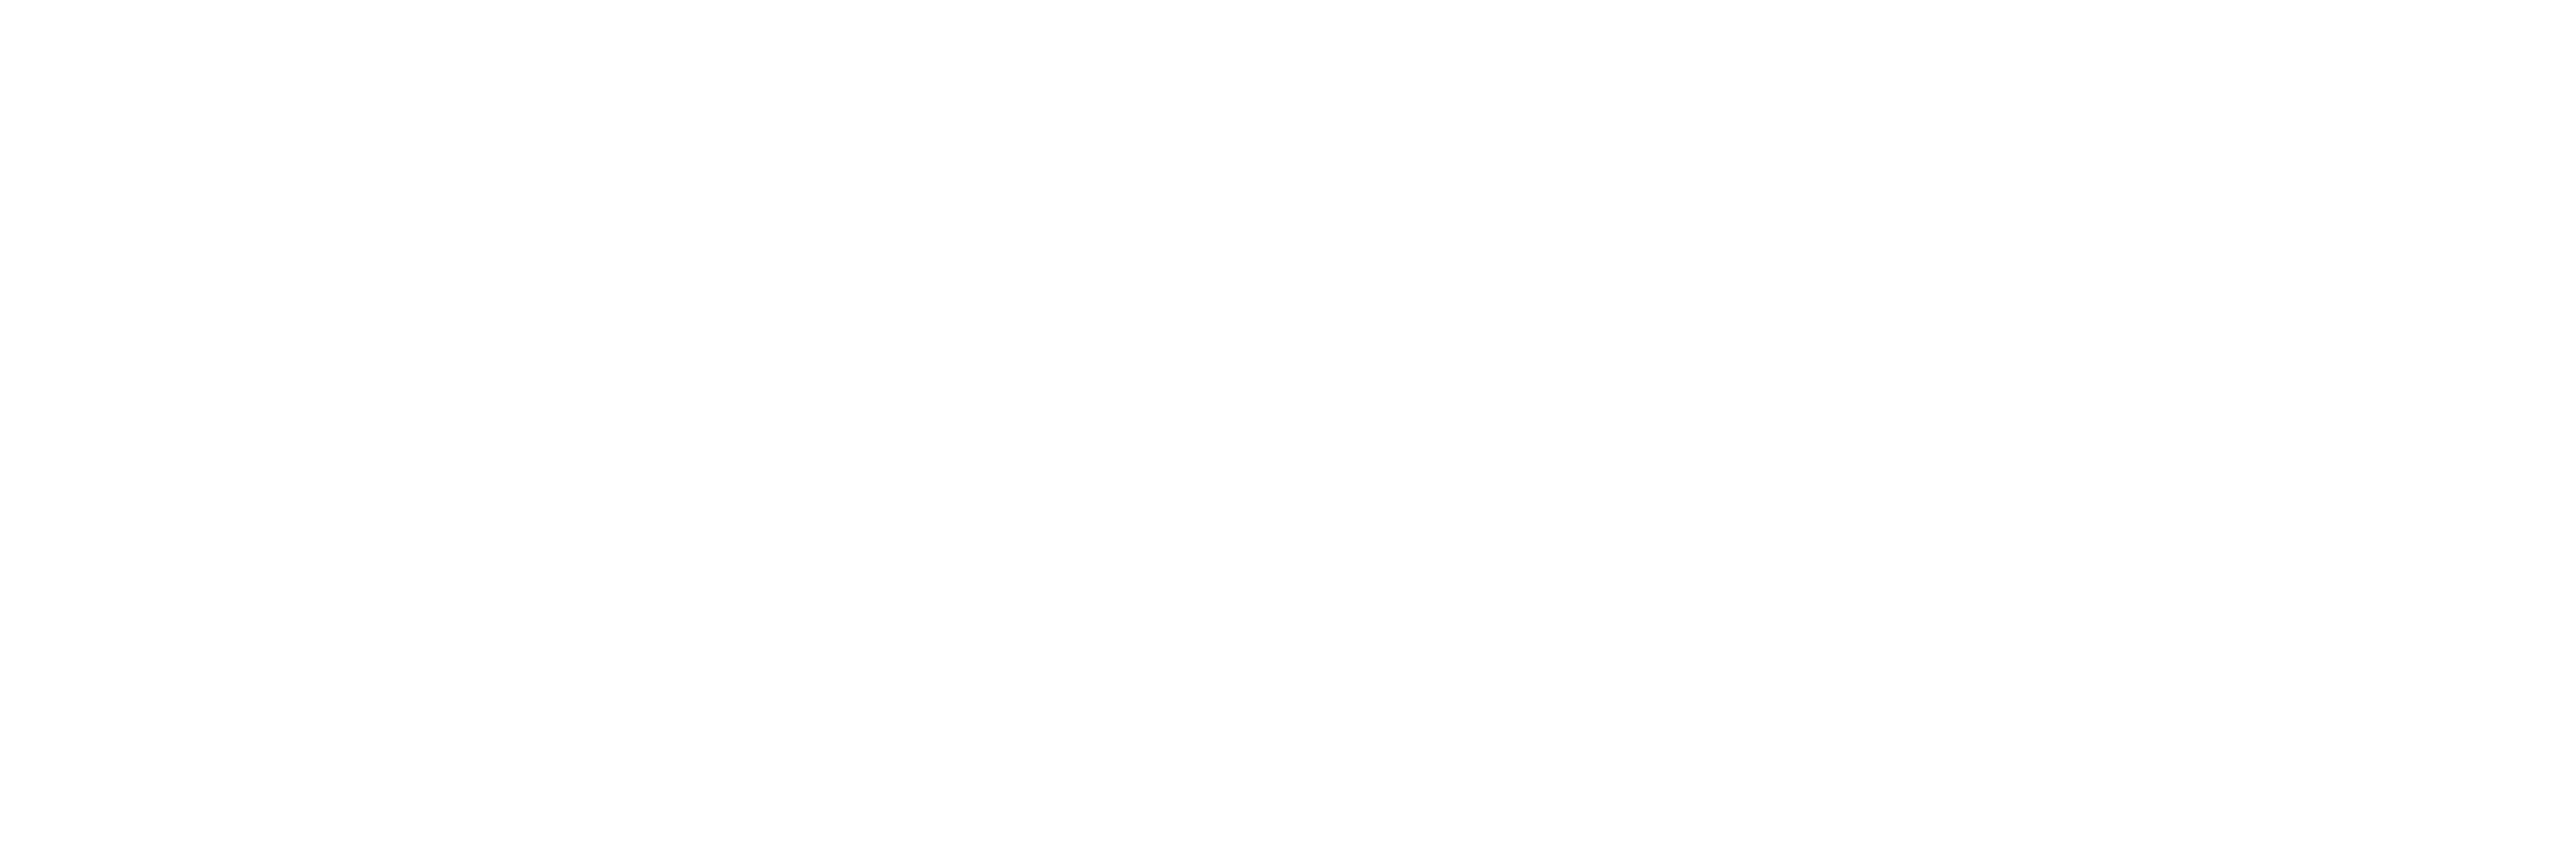 WP Proving Your Value as an Advisor - Reverse_Standard - EventDate